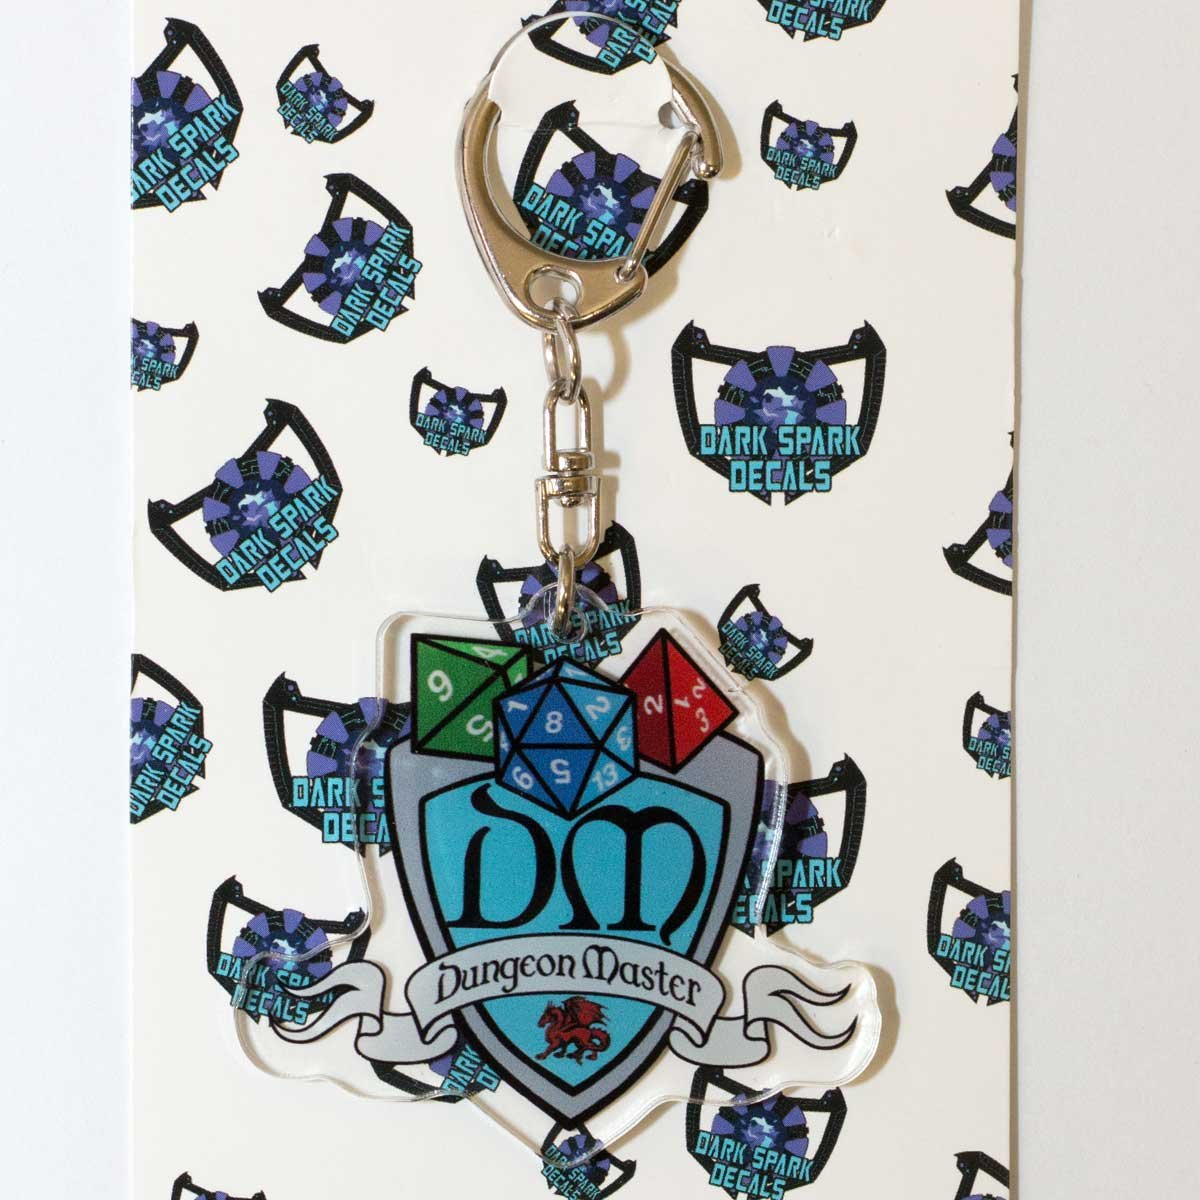 DM Dungeon Master Shield 2 Acrylic Keychain Great for the Tabletop Gamers